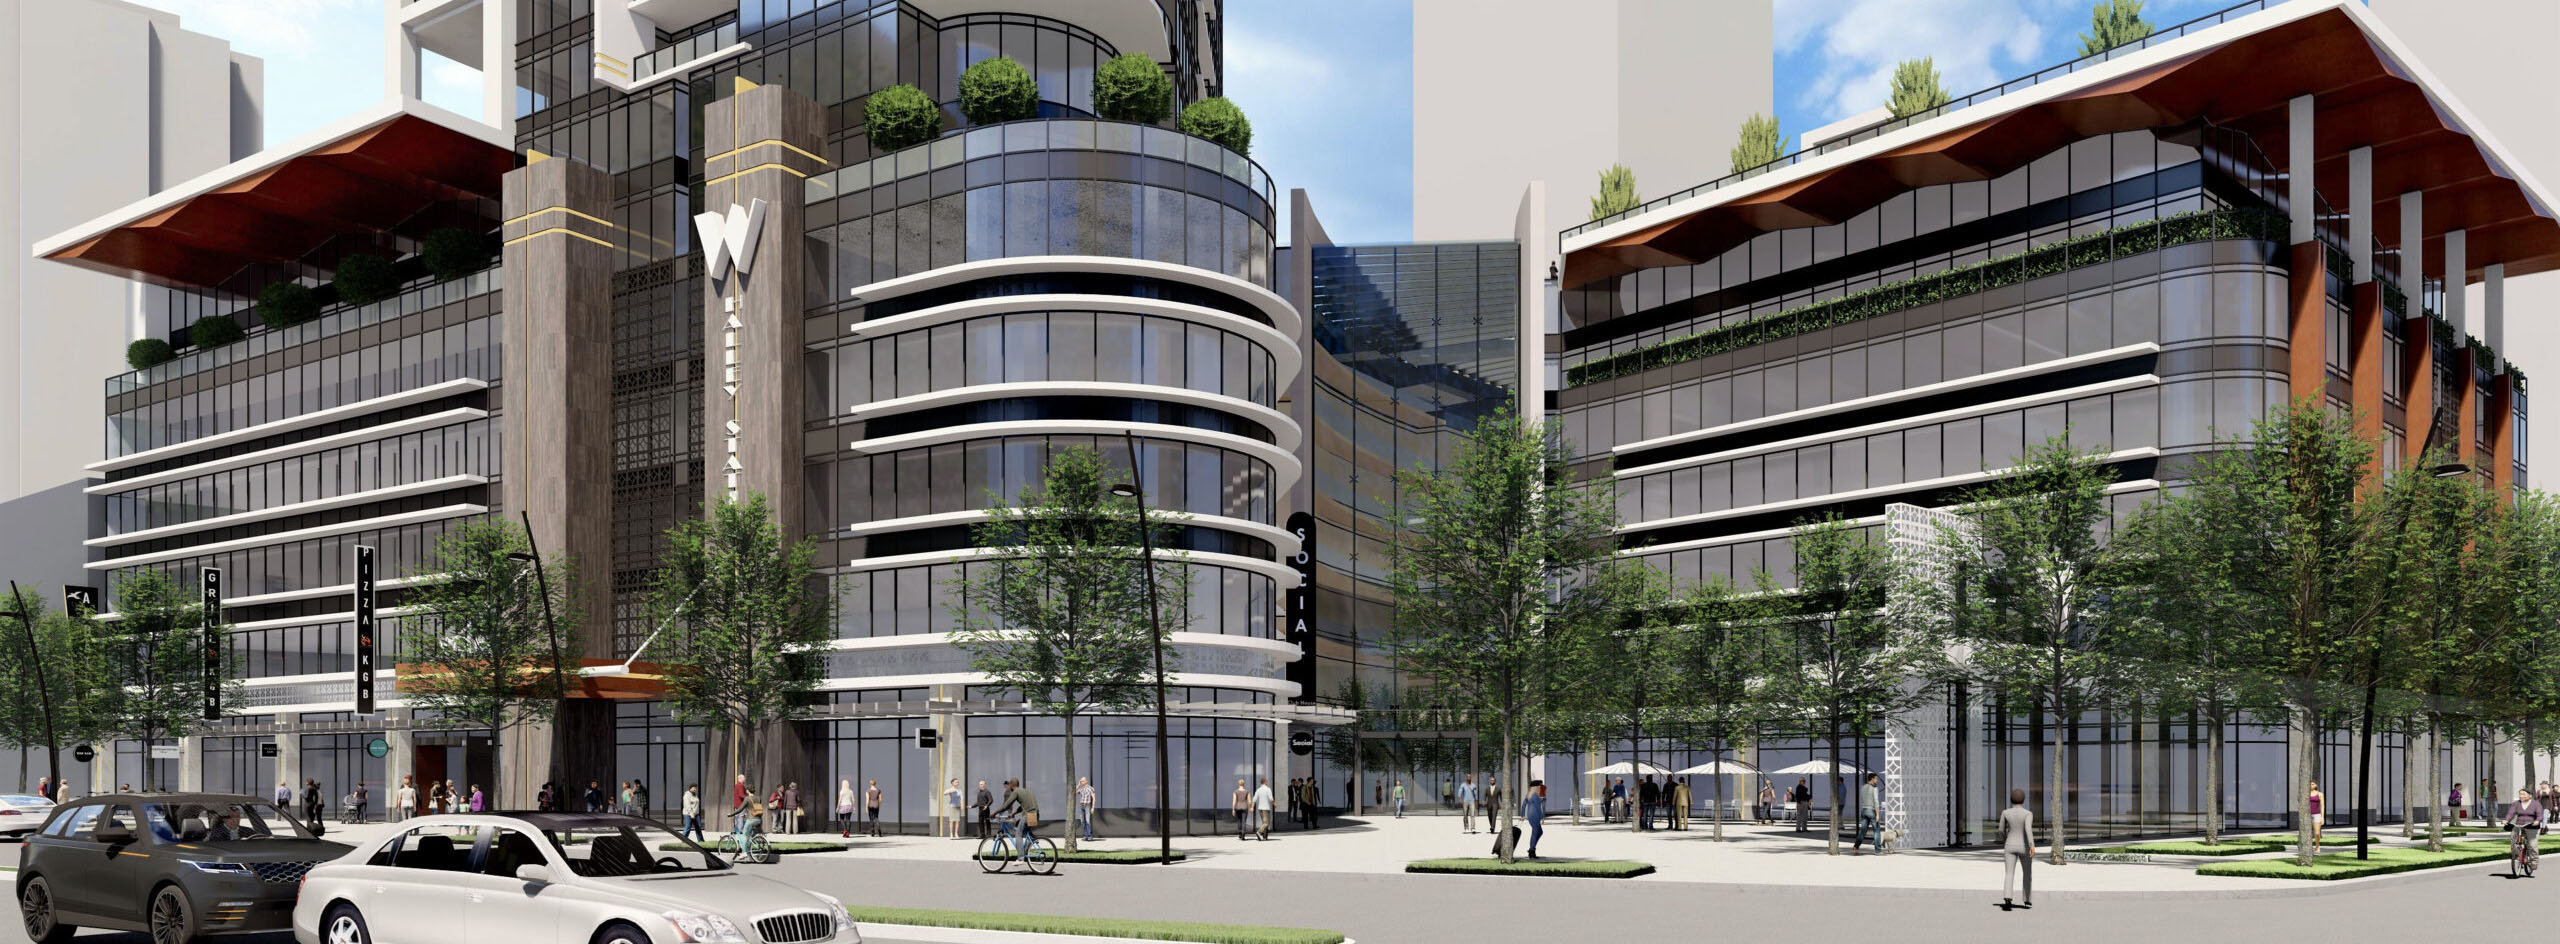 Whalley Station - 10761 King George Blvd - Rendering by Tien Sher Group of Companies!